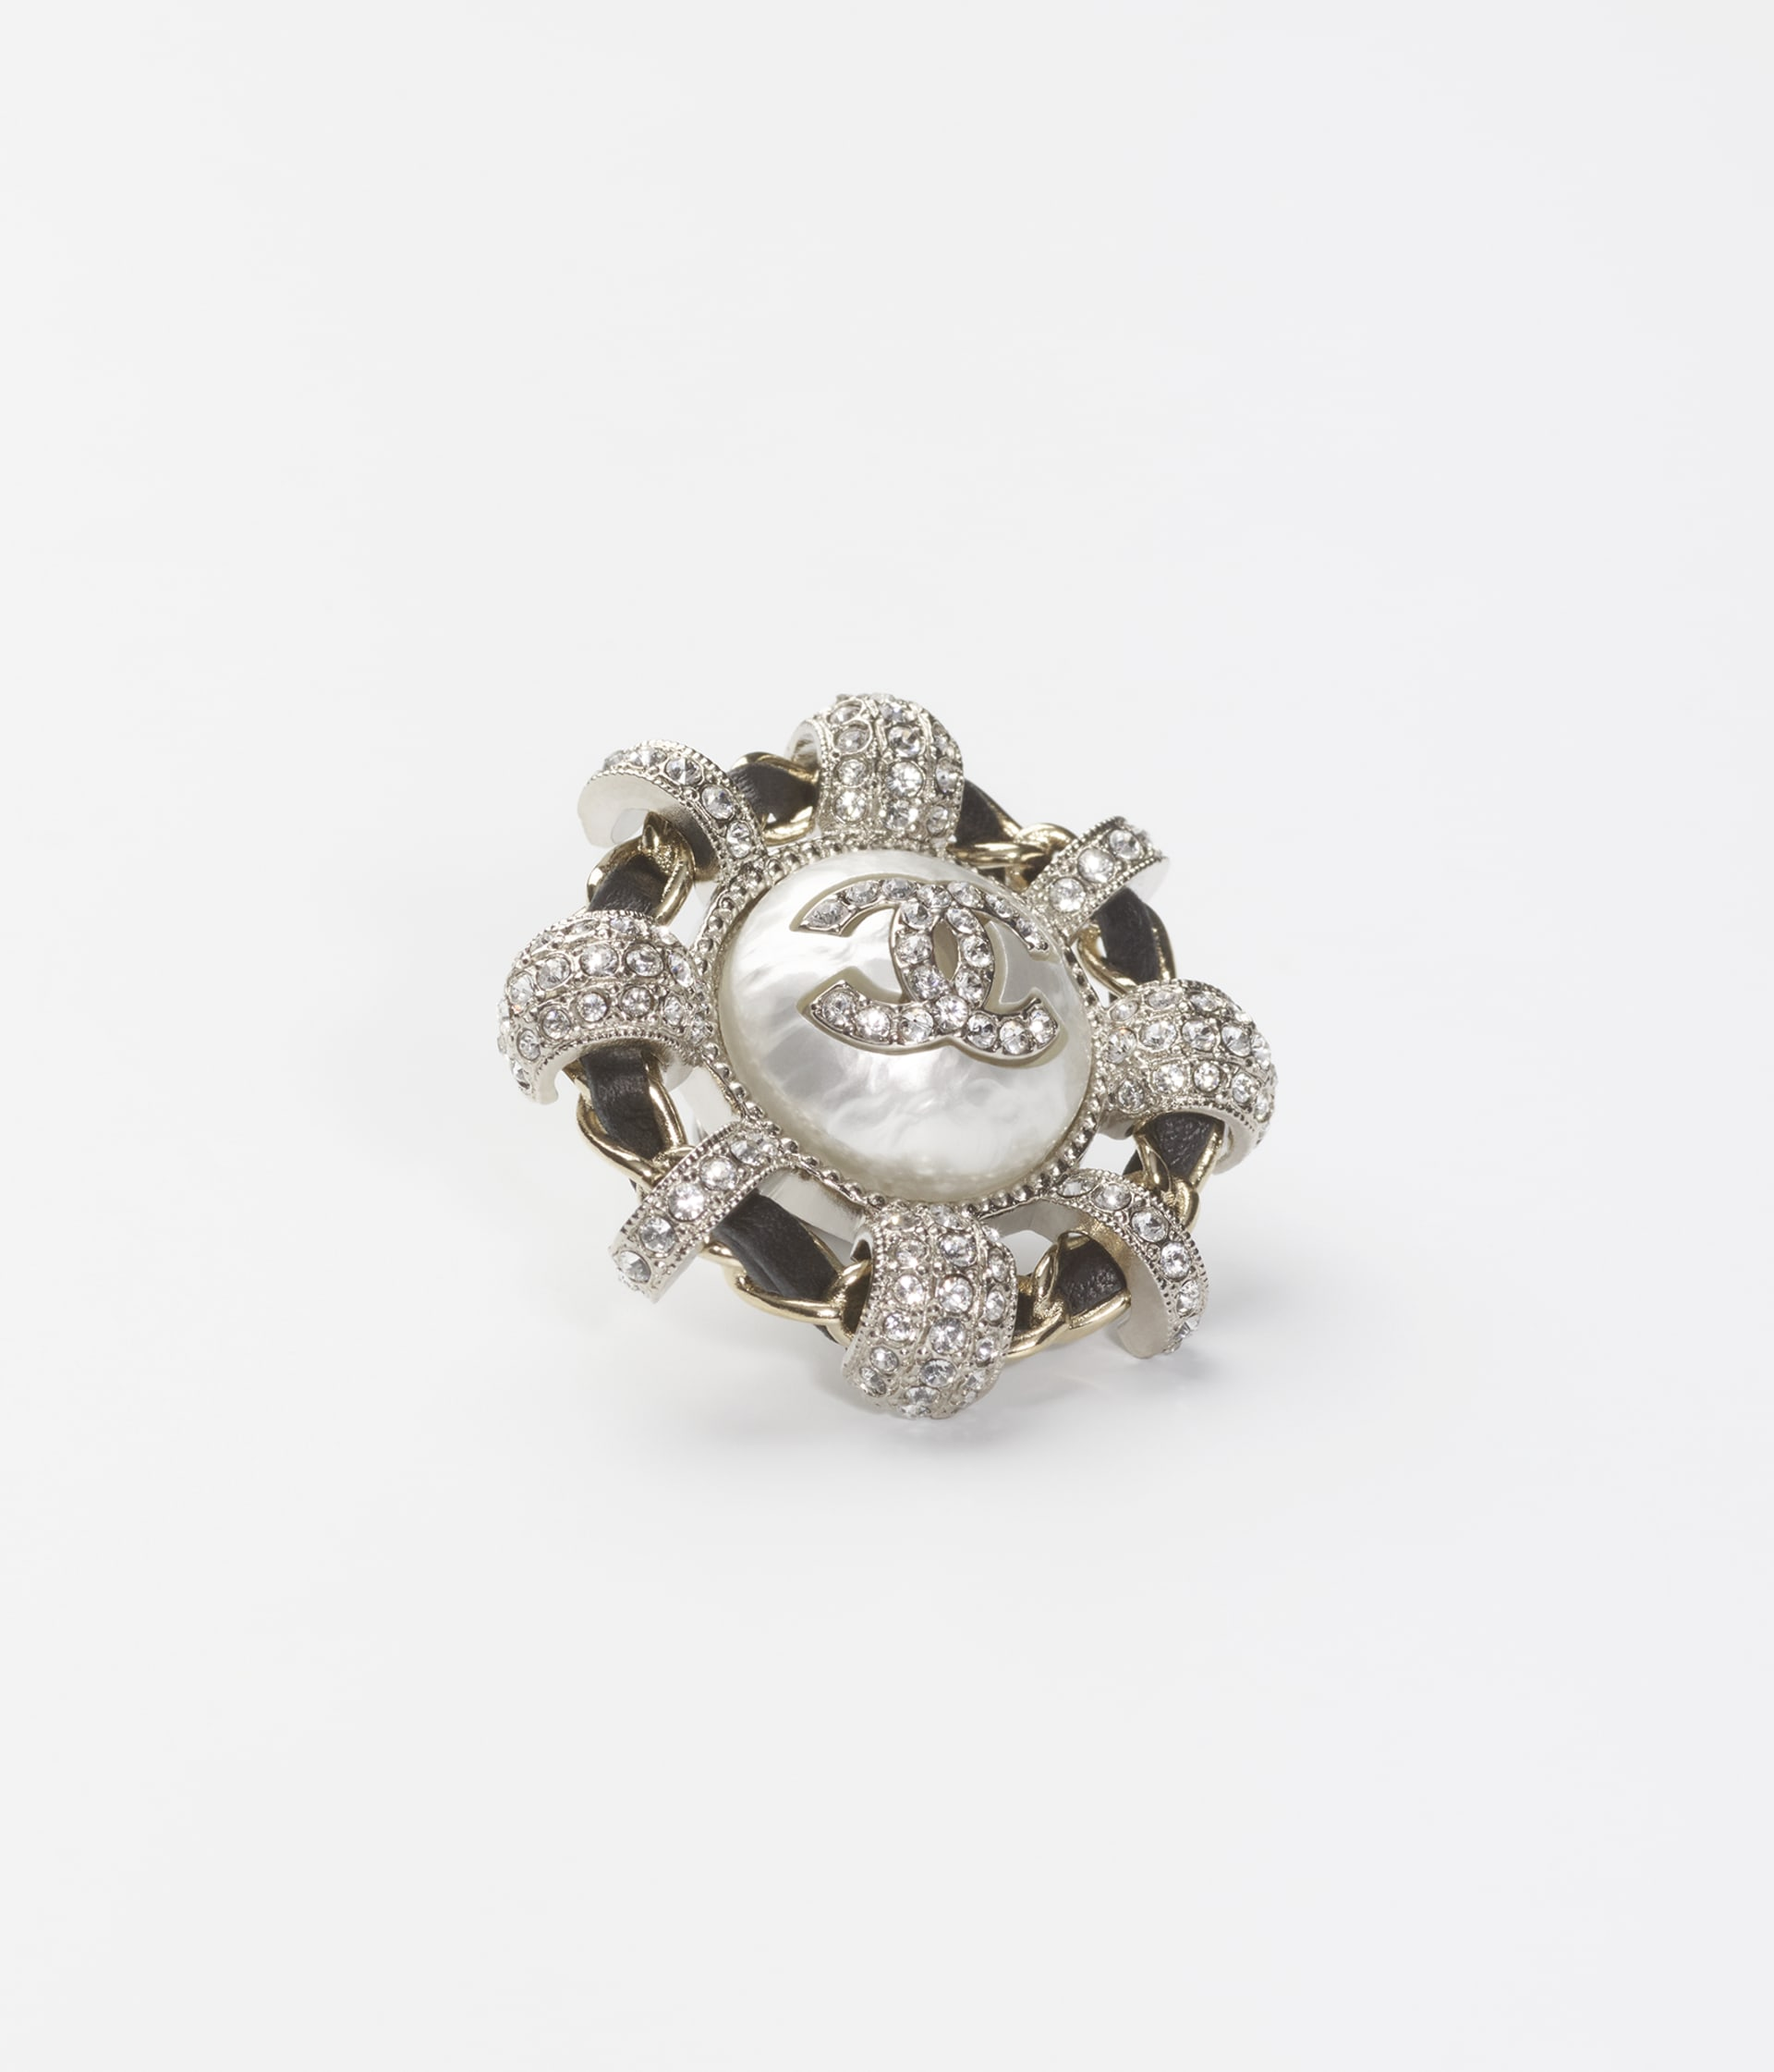 image 2 - Brooch - Metal, Calfskin, Imitation Pearls & Strass - Gold, Silver, Black, Pearly White & Crystal